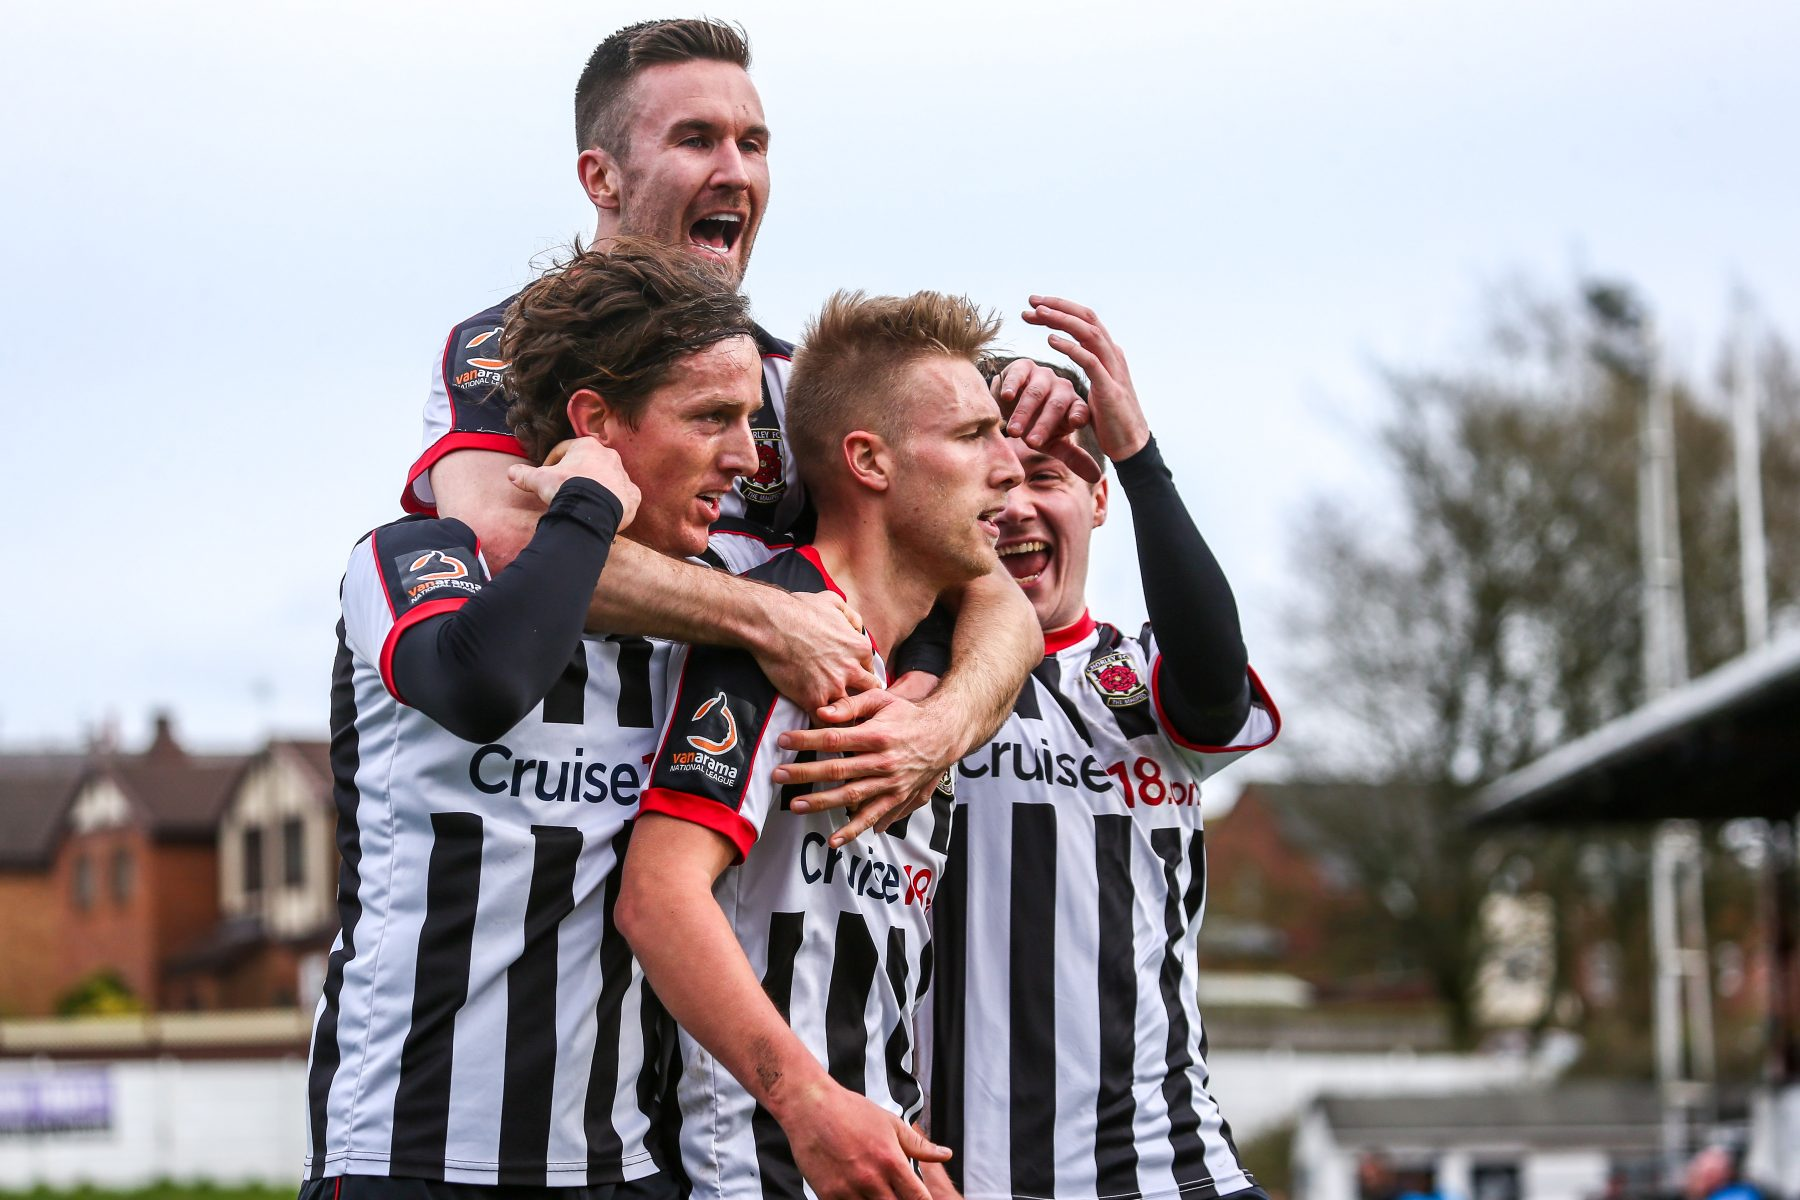 https://www.chorleyfc.com/wp-content/uploads/2019/03/TeamLeamington.jpg